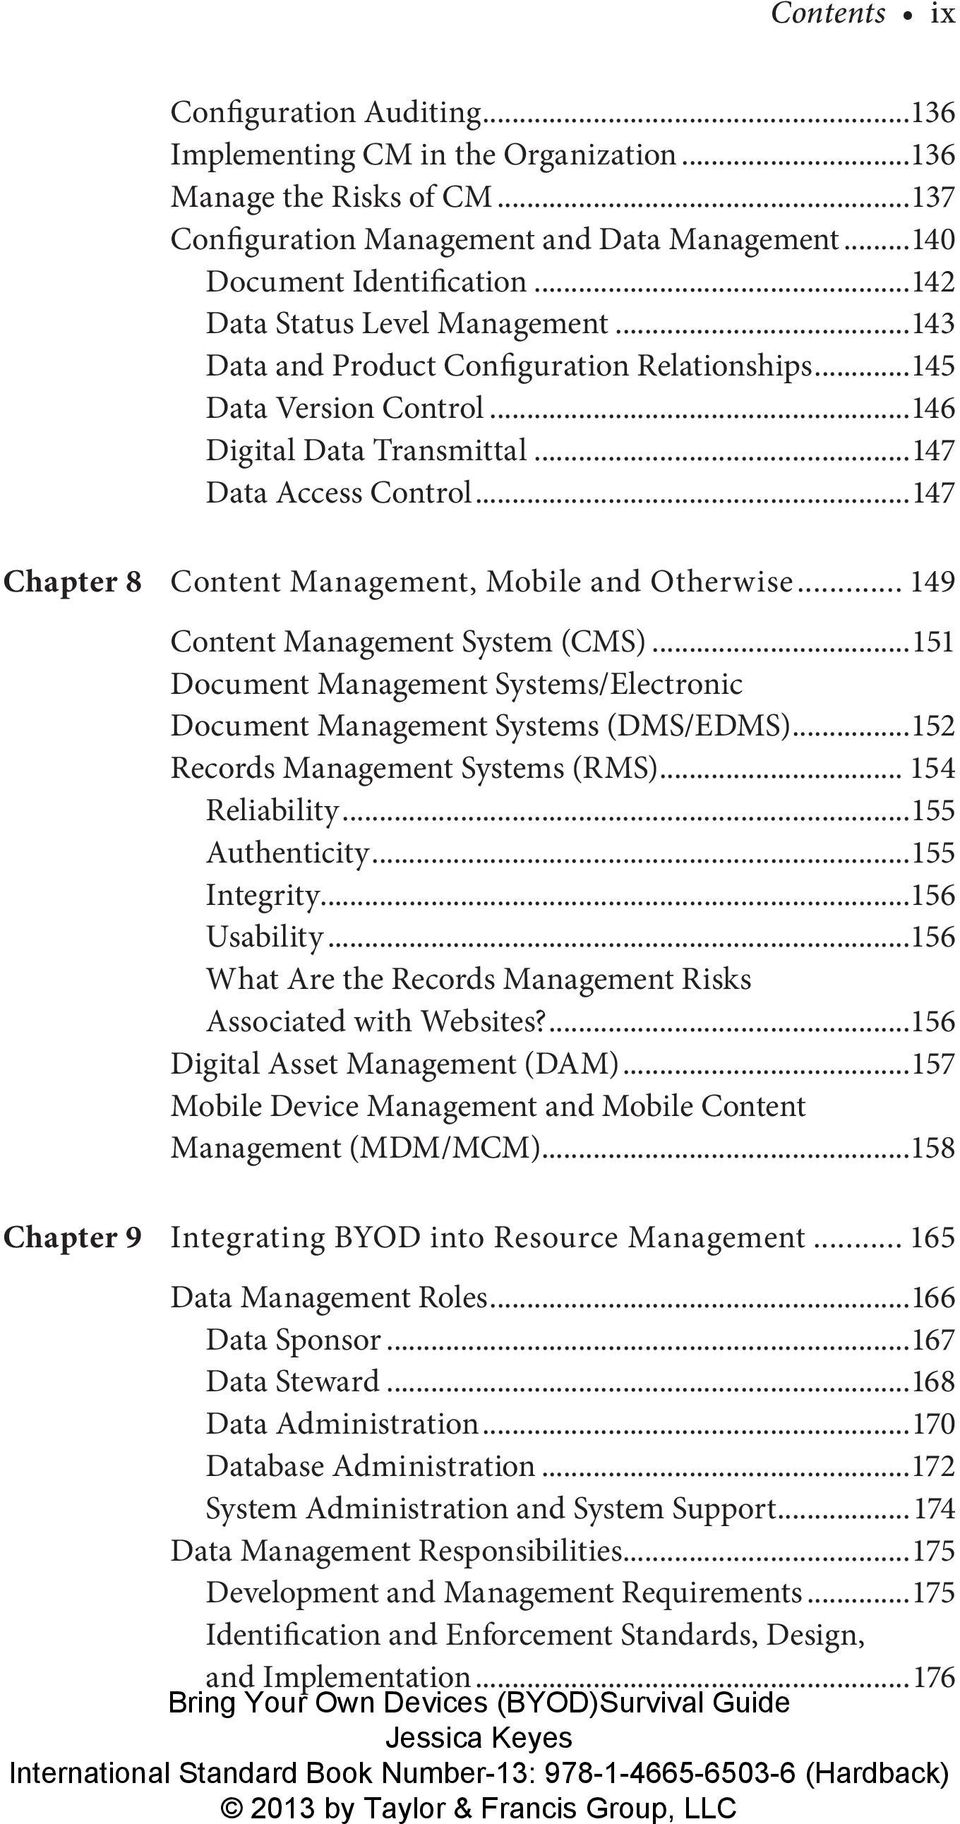 ..147 Chapter 8 Content Management, Mobile and Otherwise... 149 Content Management System (CMS)...151 Document Management Systems/Electronic Document Management Systems (DMS/EDMS).